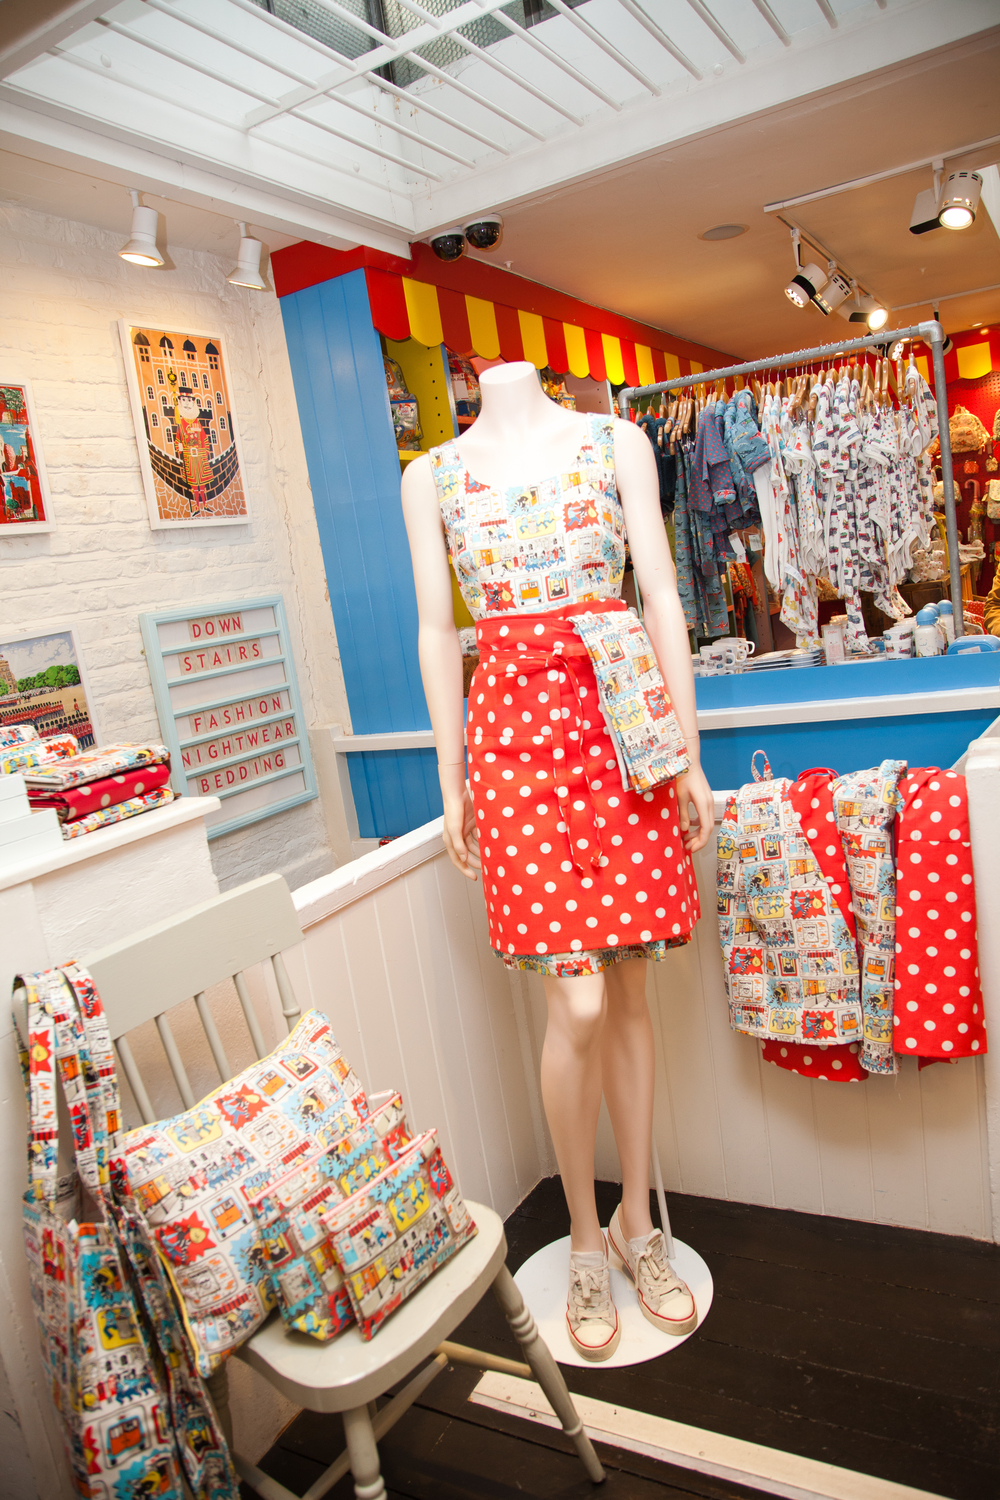 _MG_9999_cathkidston_52.jpg